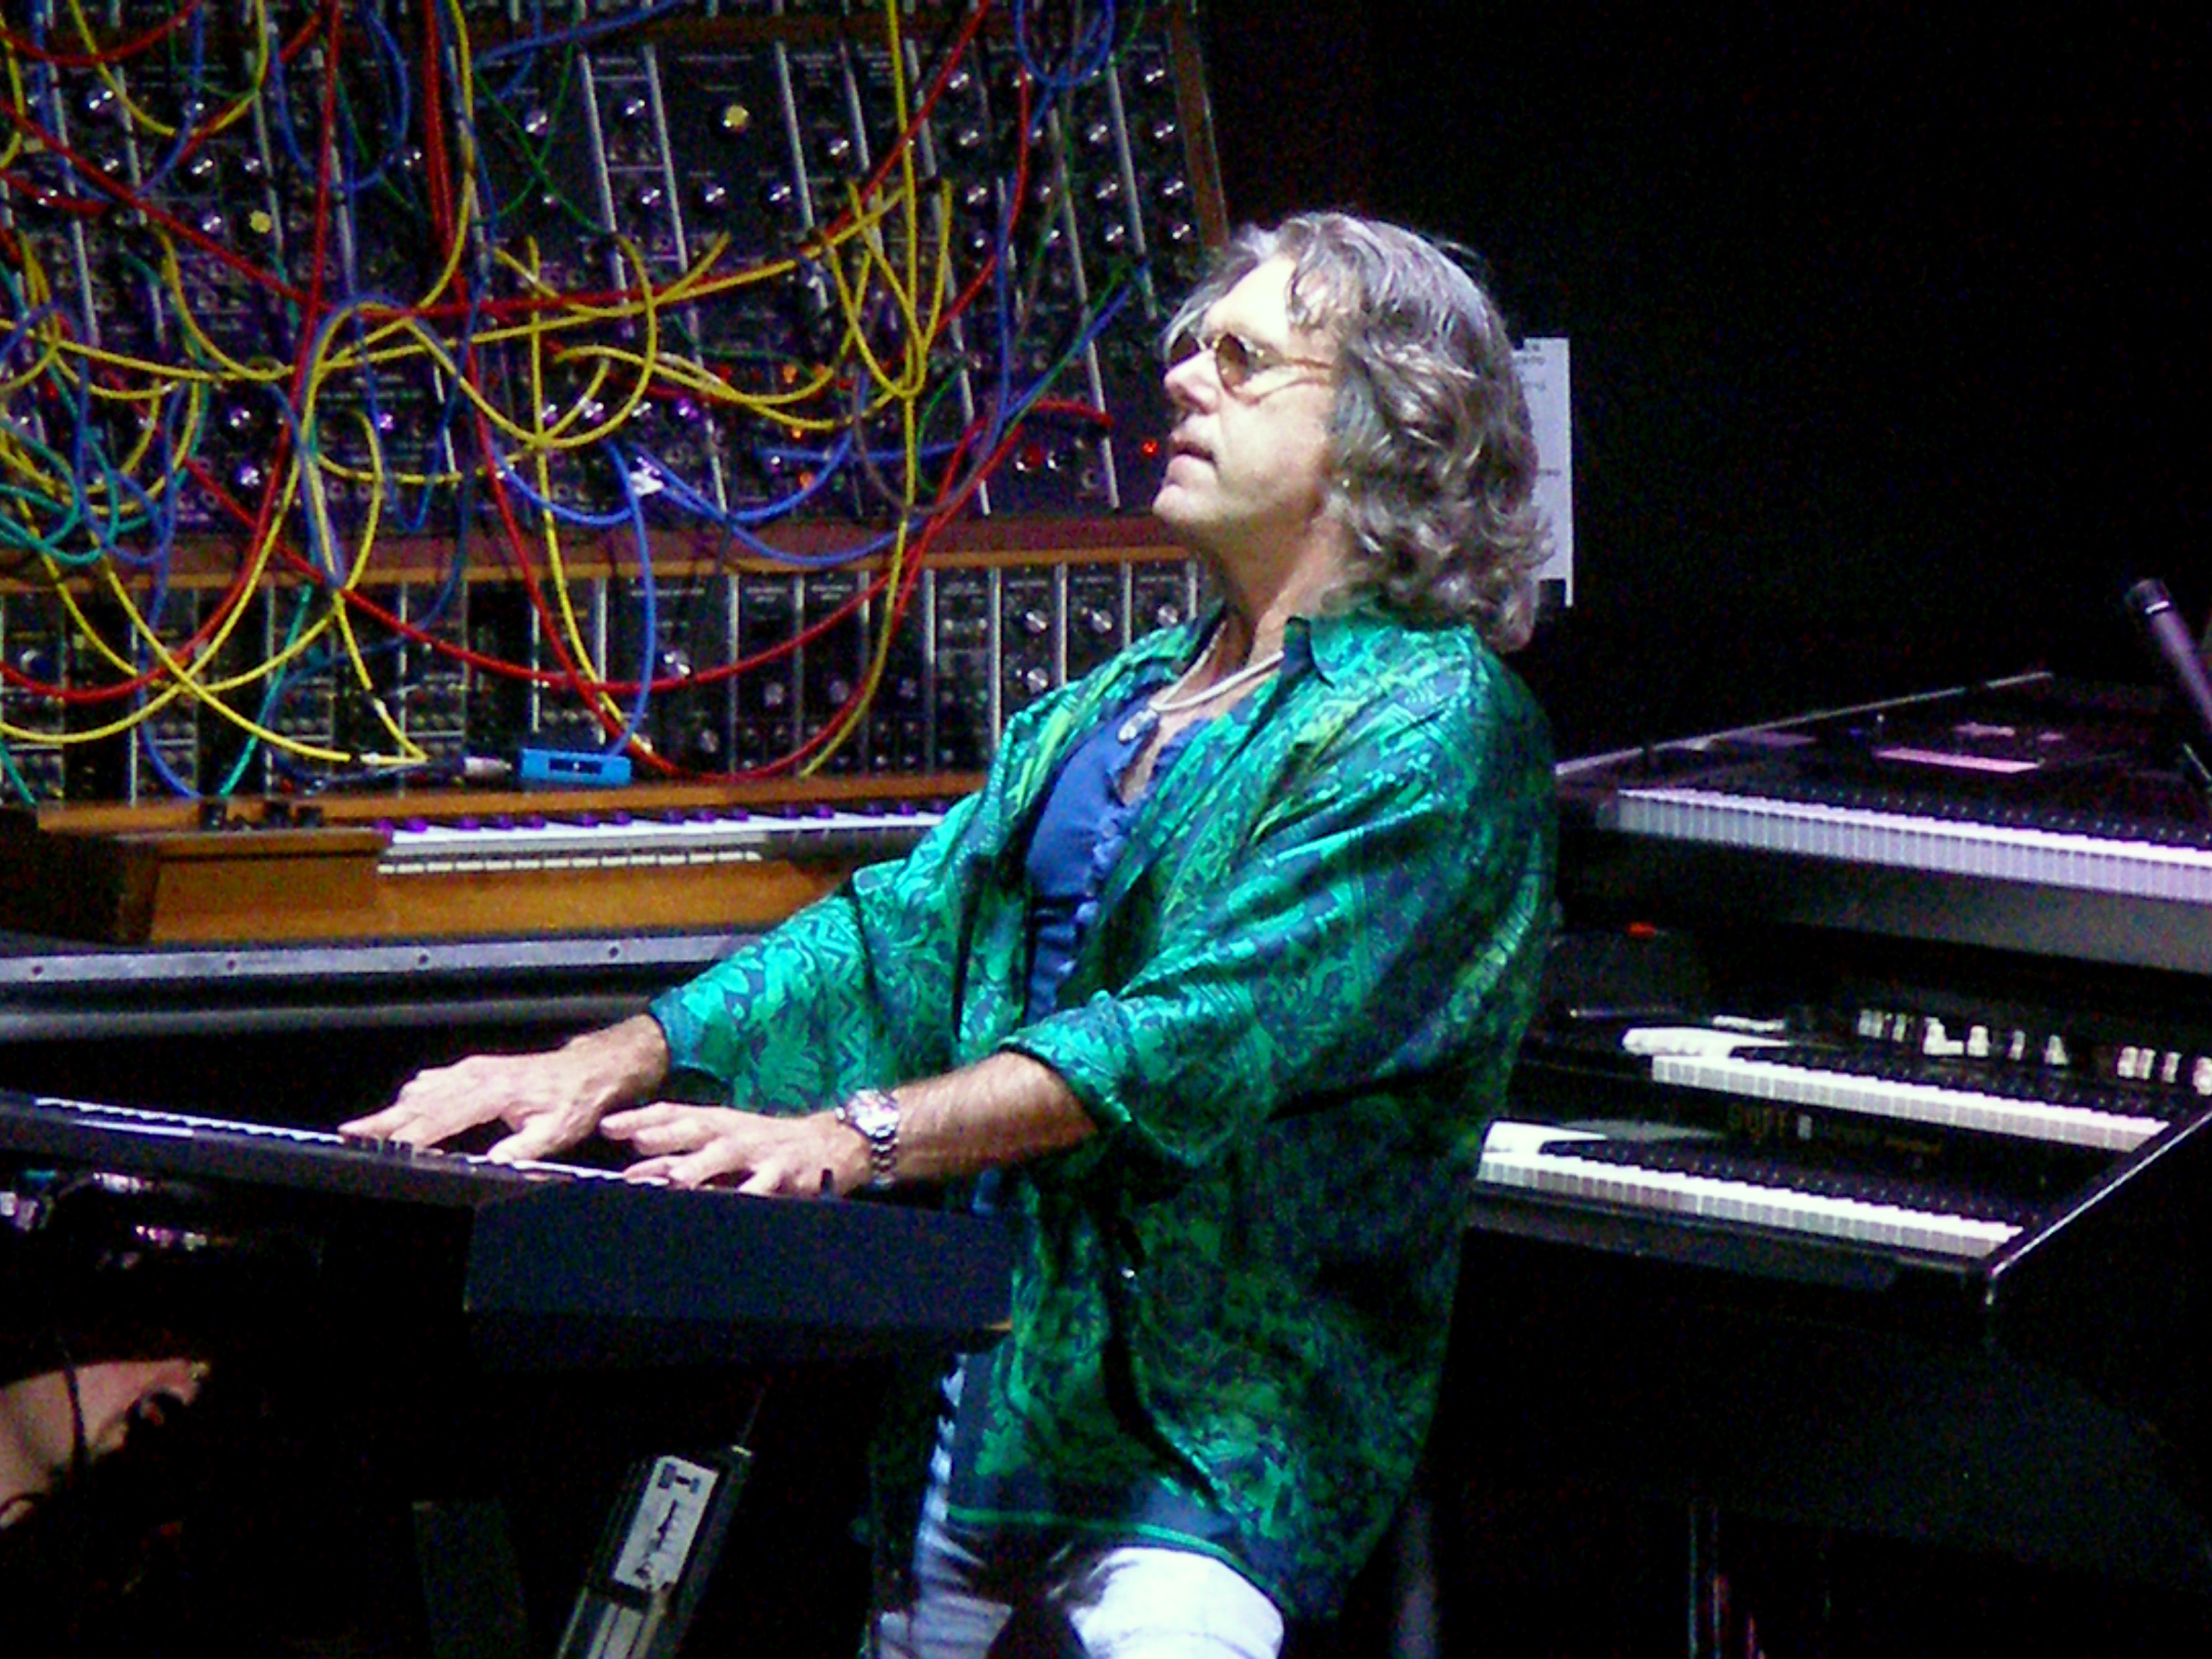 Rip keith emerson keyboardist extraordinaire of emerson for The emrson